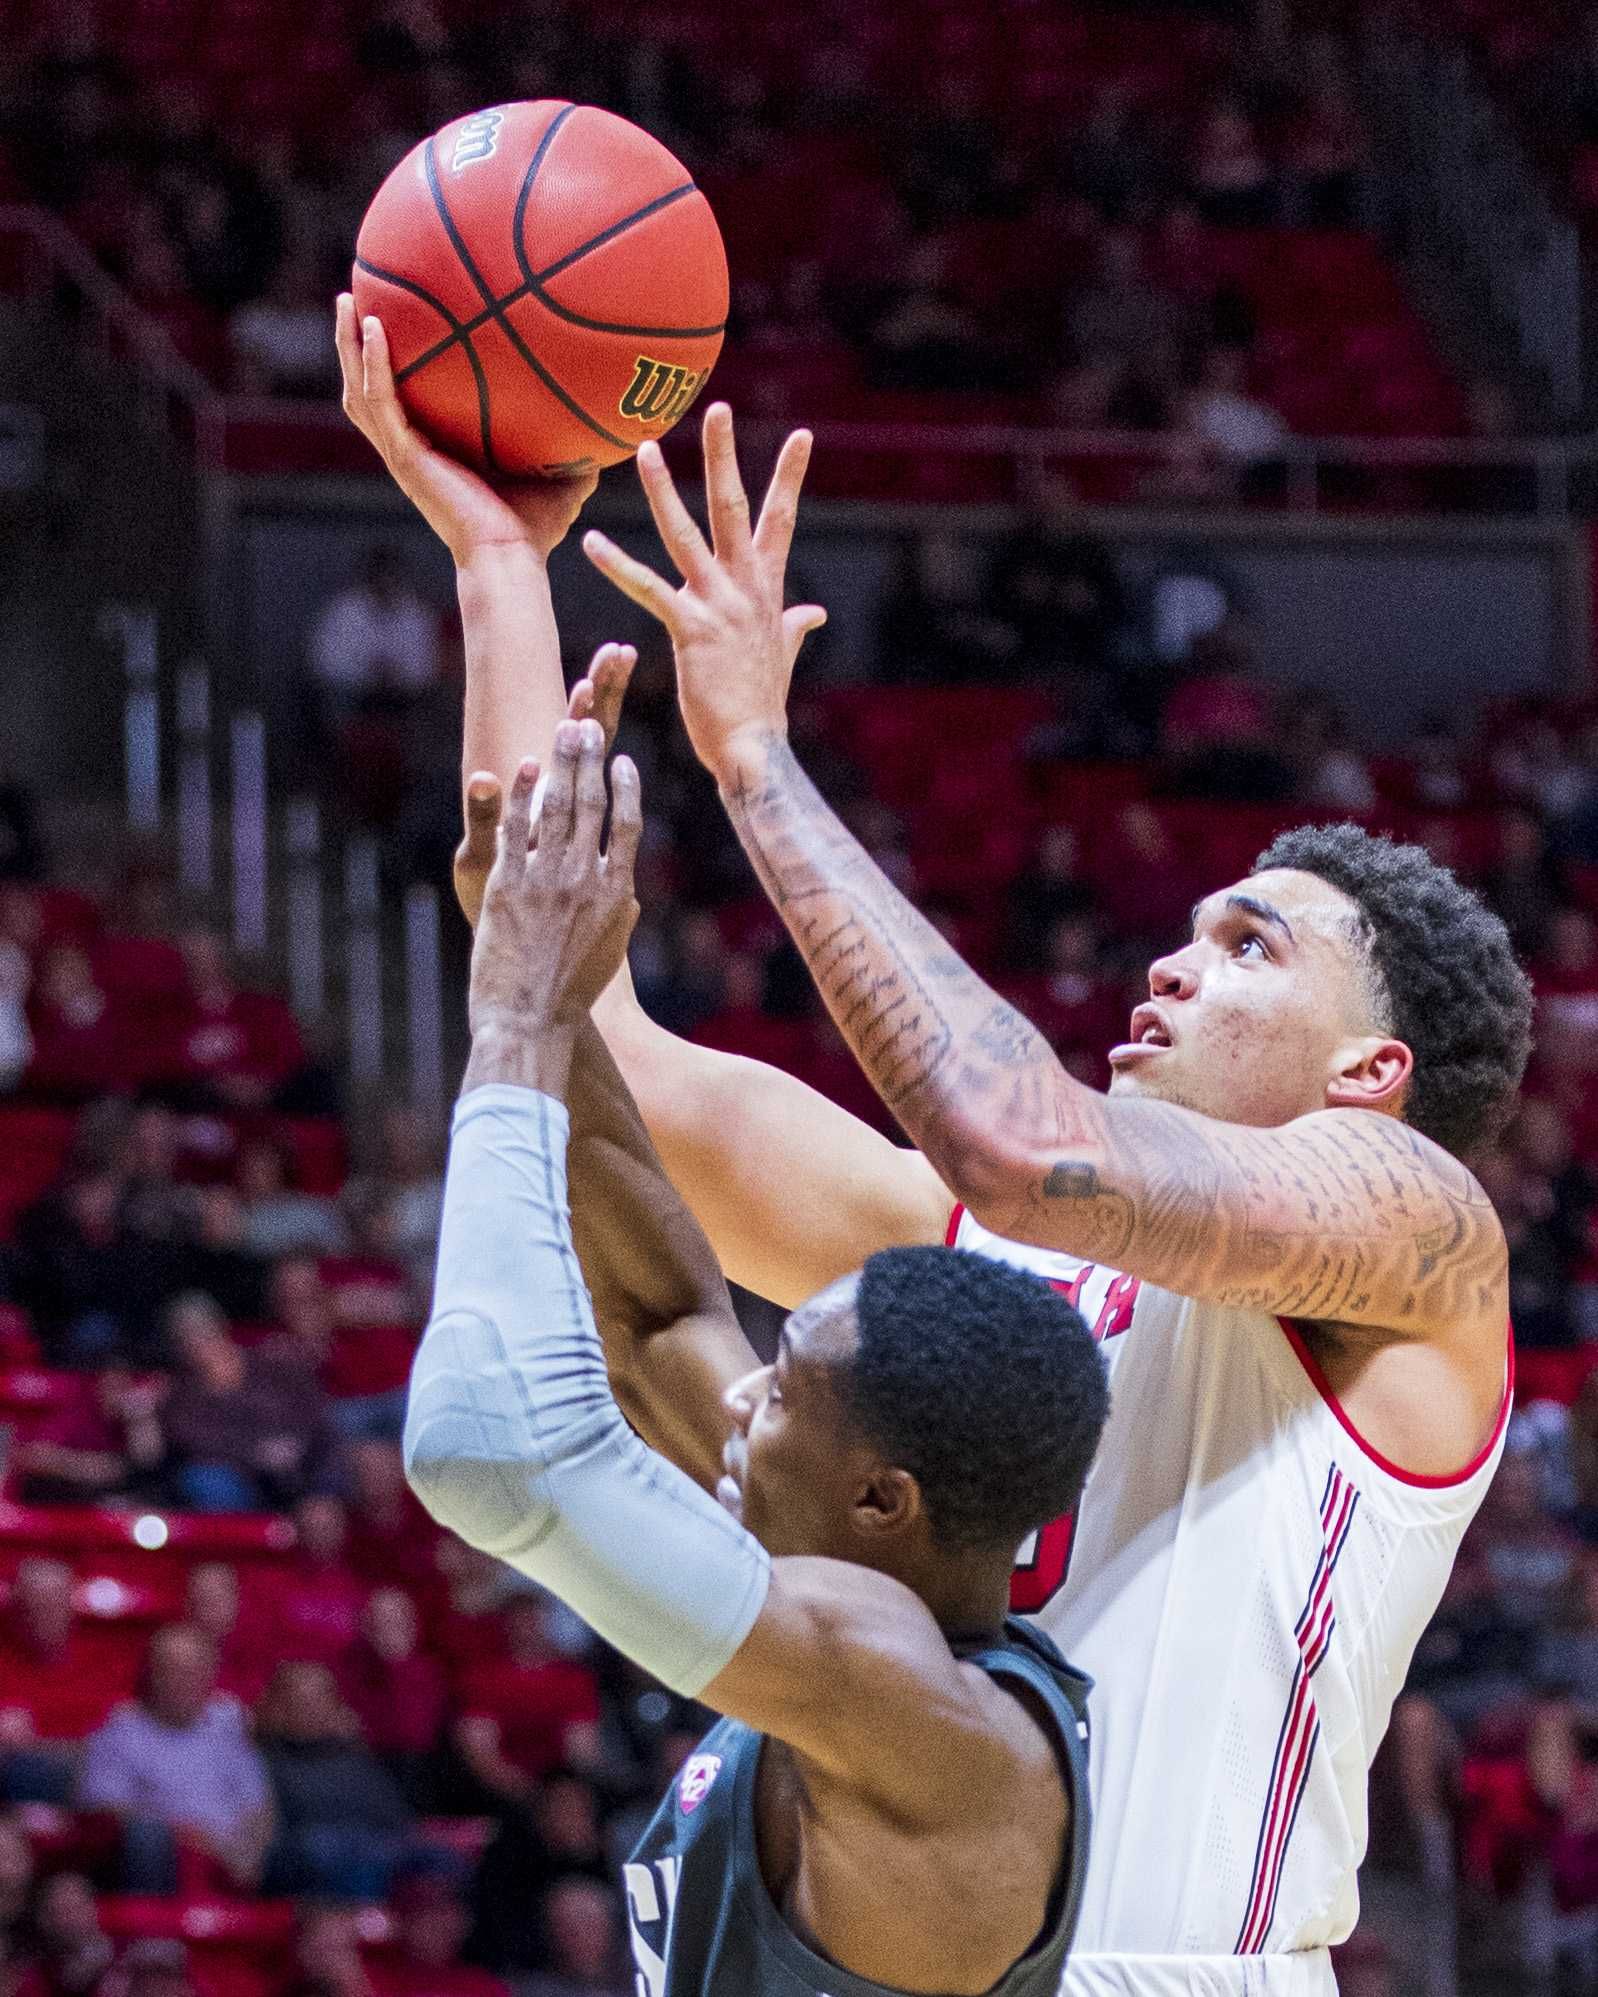 University of Utah freshman forward Timmy Allen (20) shoots over Washington State senior guard Viont'e Daniels (24) during an NCAA Basketball game at the Jon M. Huntsman Center in Salt Lake City, Utah on Saturday, Jan. 12, 2019. (Photo by Kiffer Creveling | The Daily Utah Chronicle)